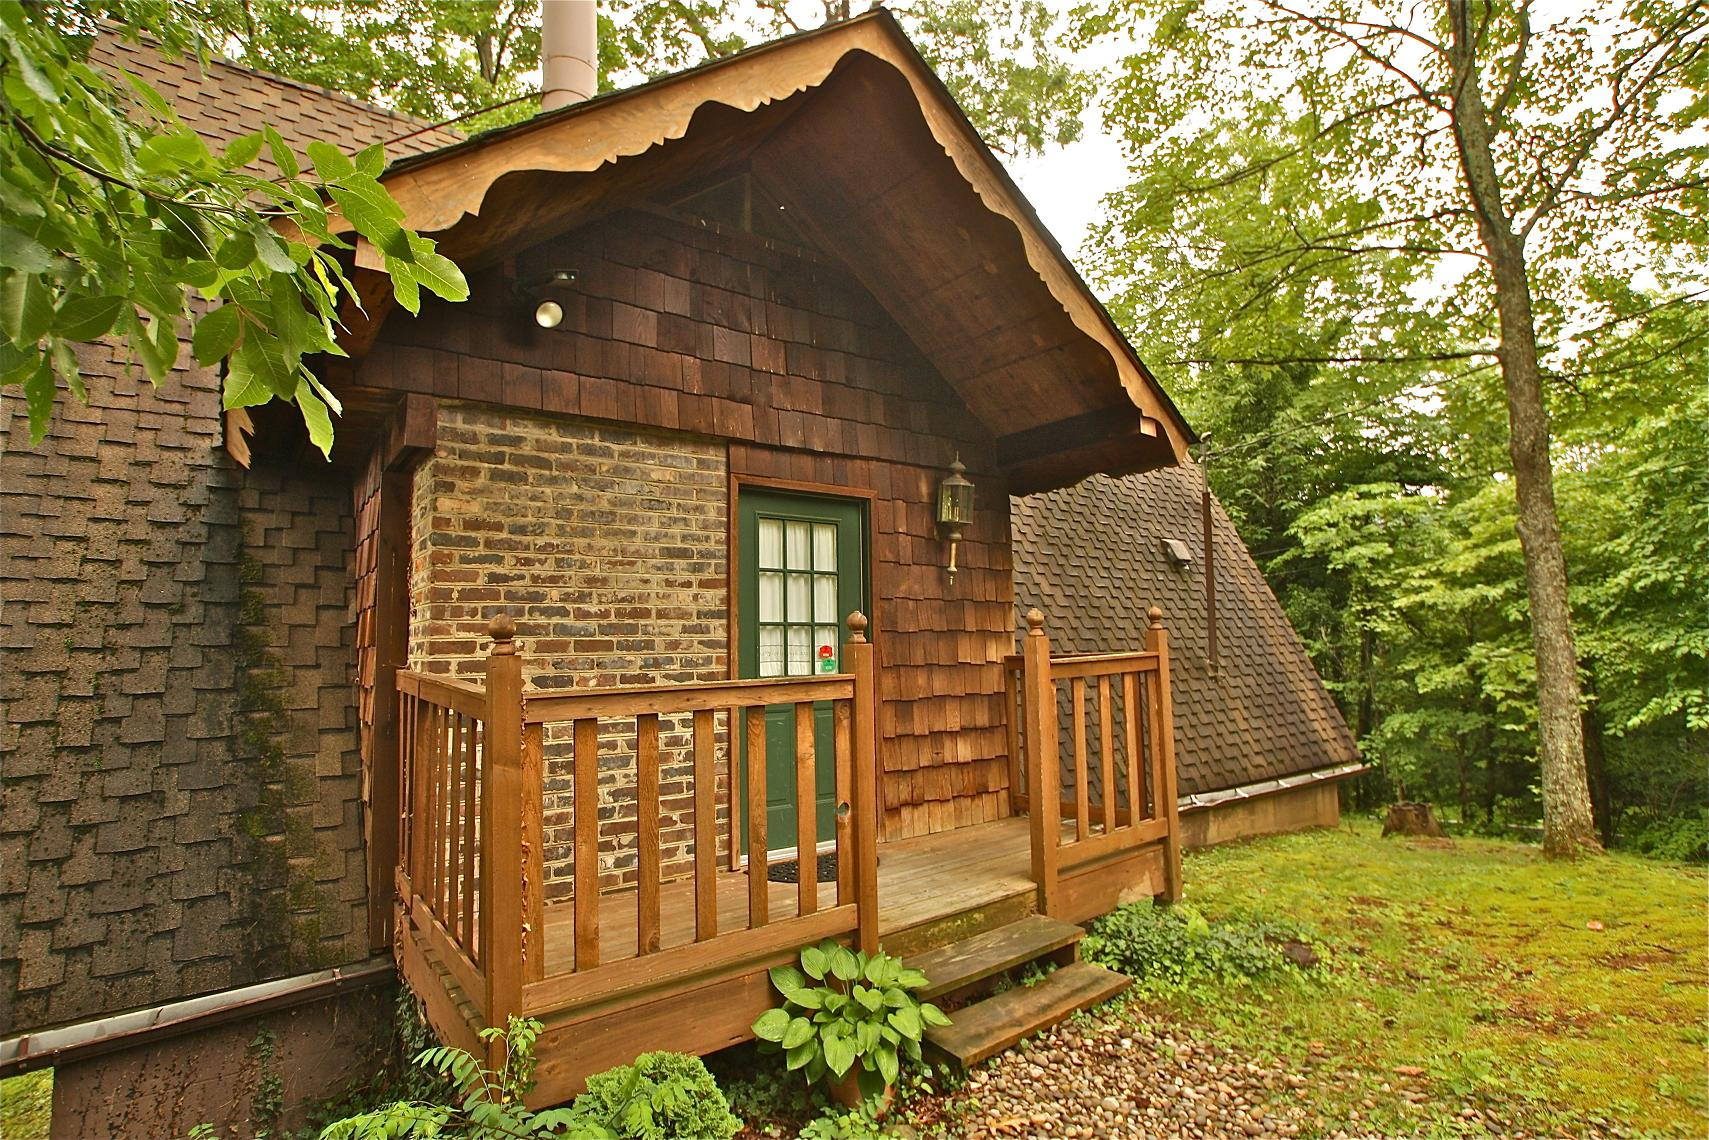 Suite One A 1 Bedroom Cabin In Gatlinburg Tennessee